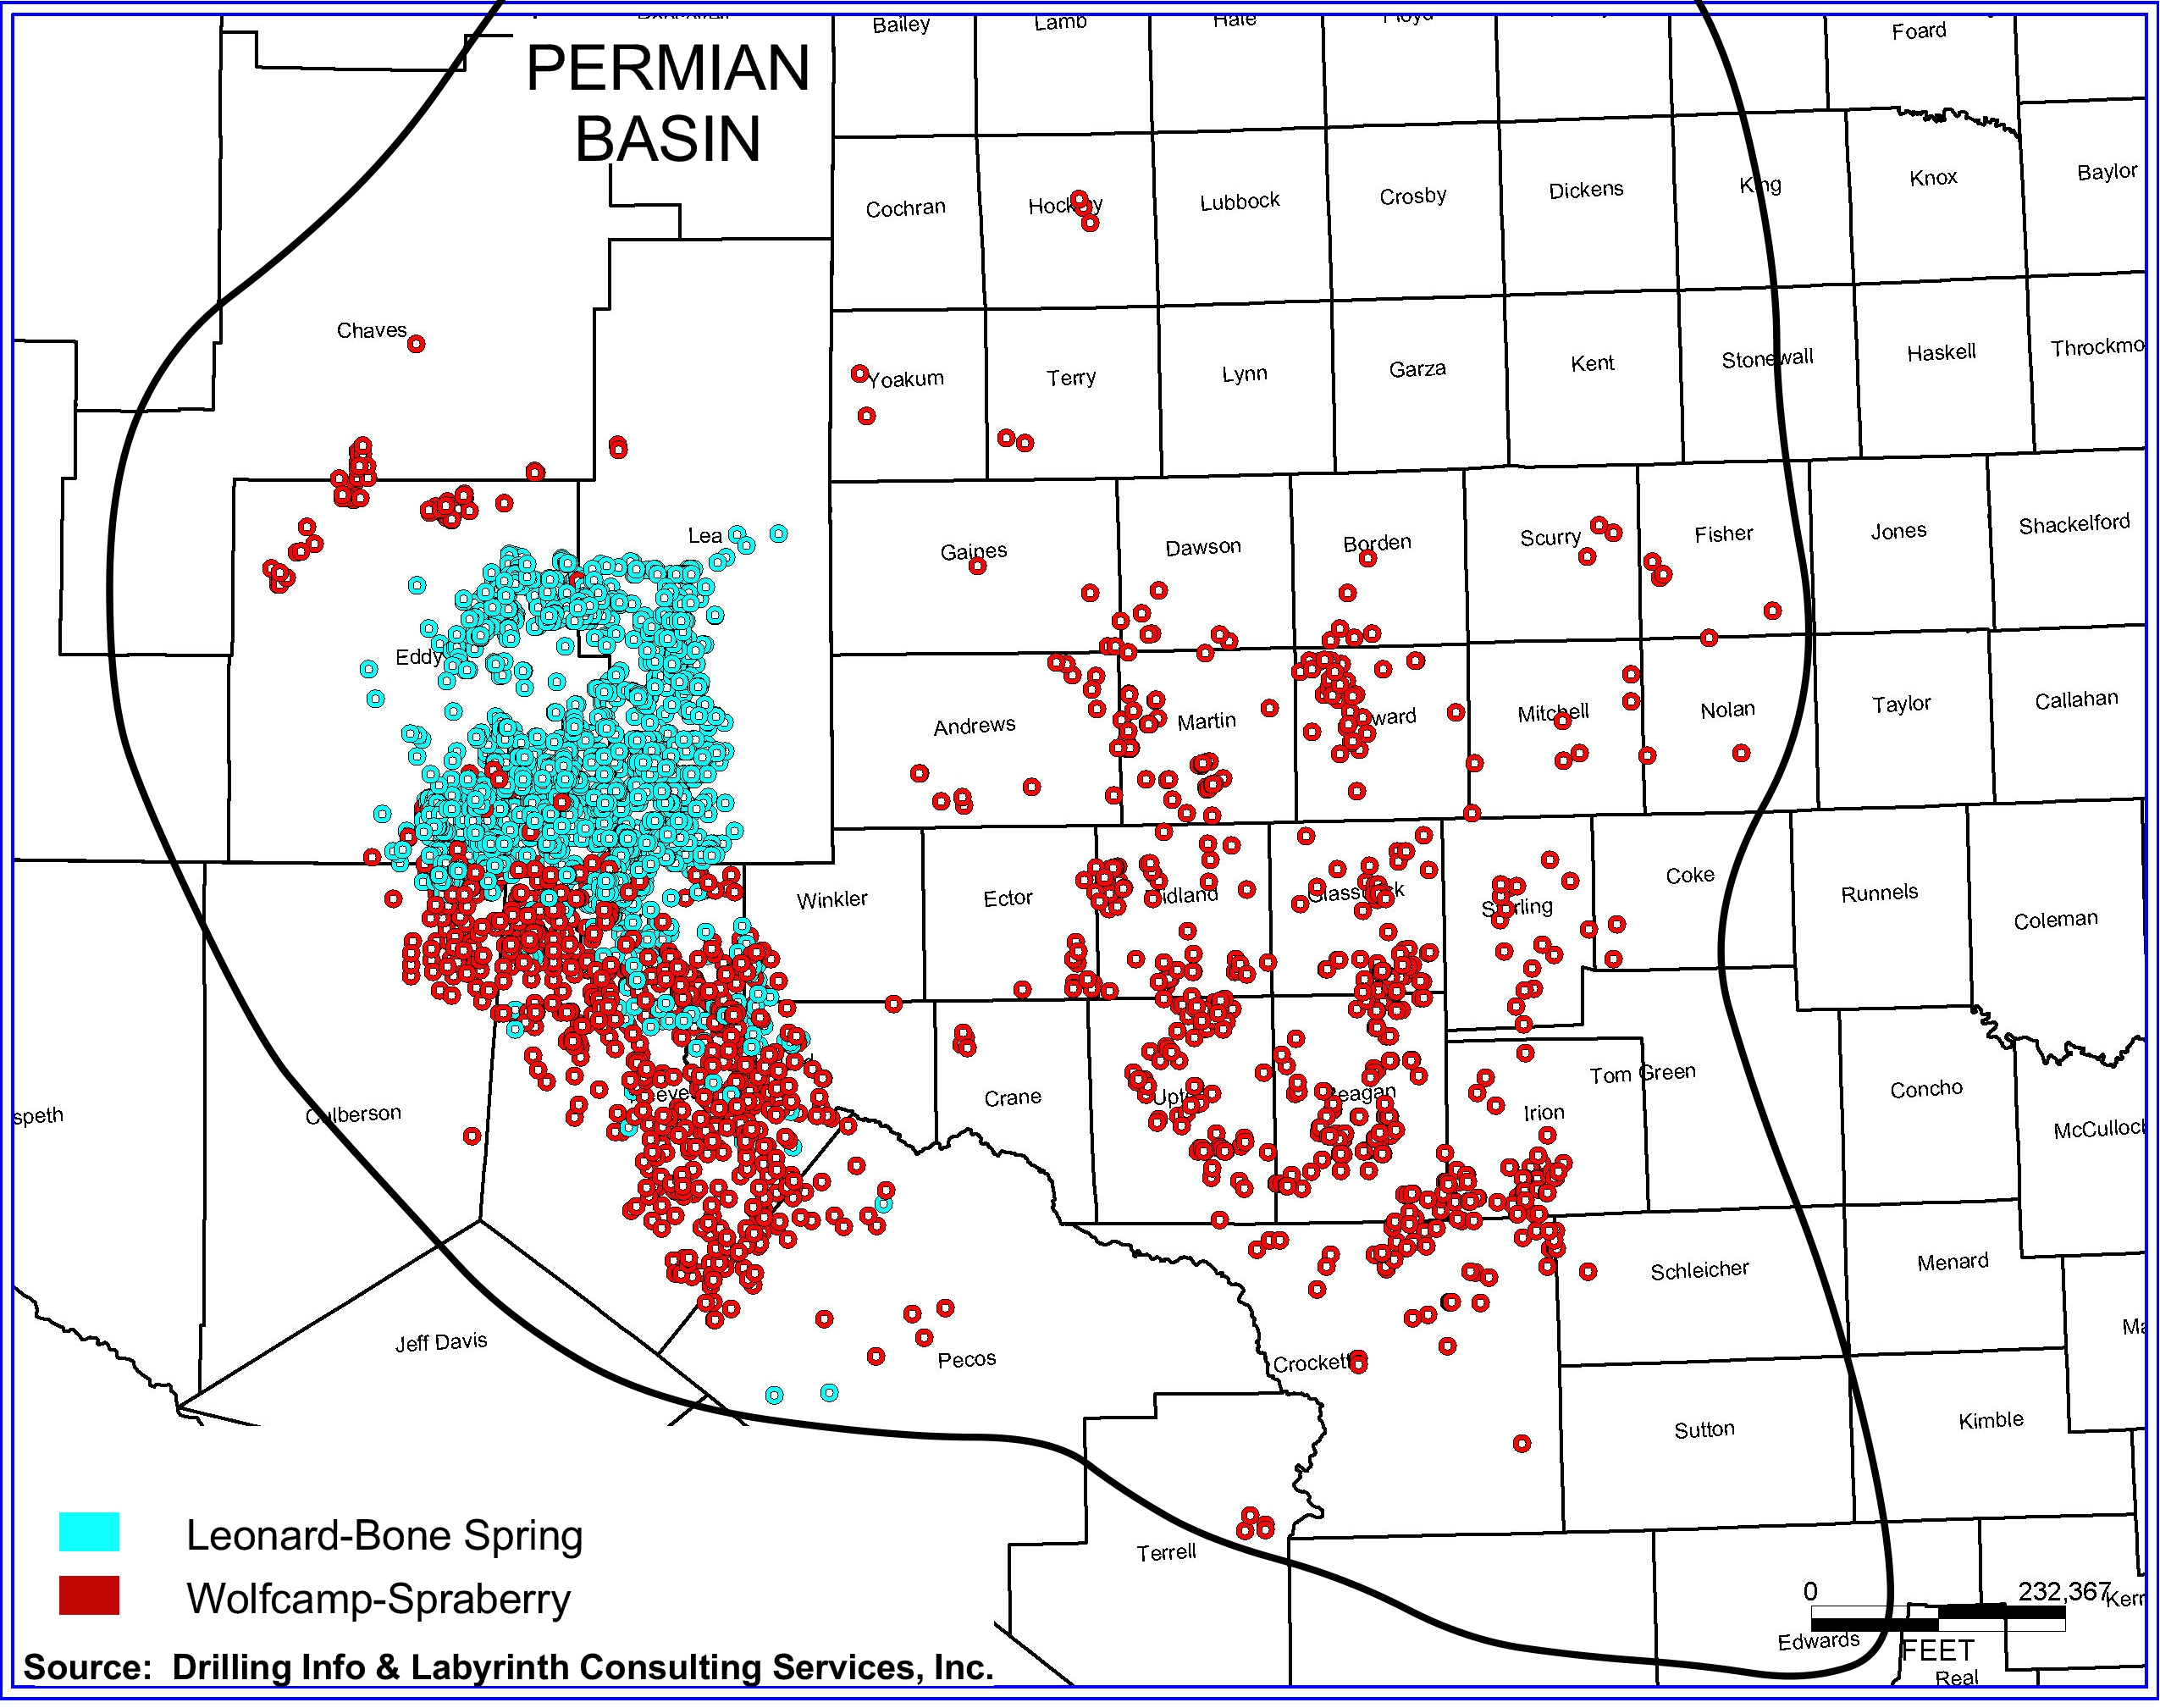 Art Berman Less Than Percent Of Permian Basin Is Commercial At - Us shale play map 2016